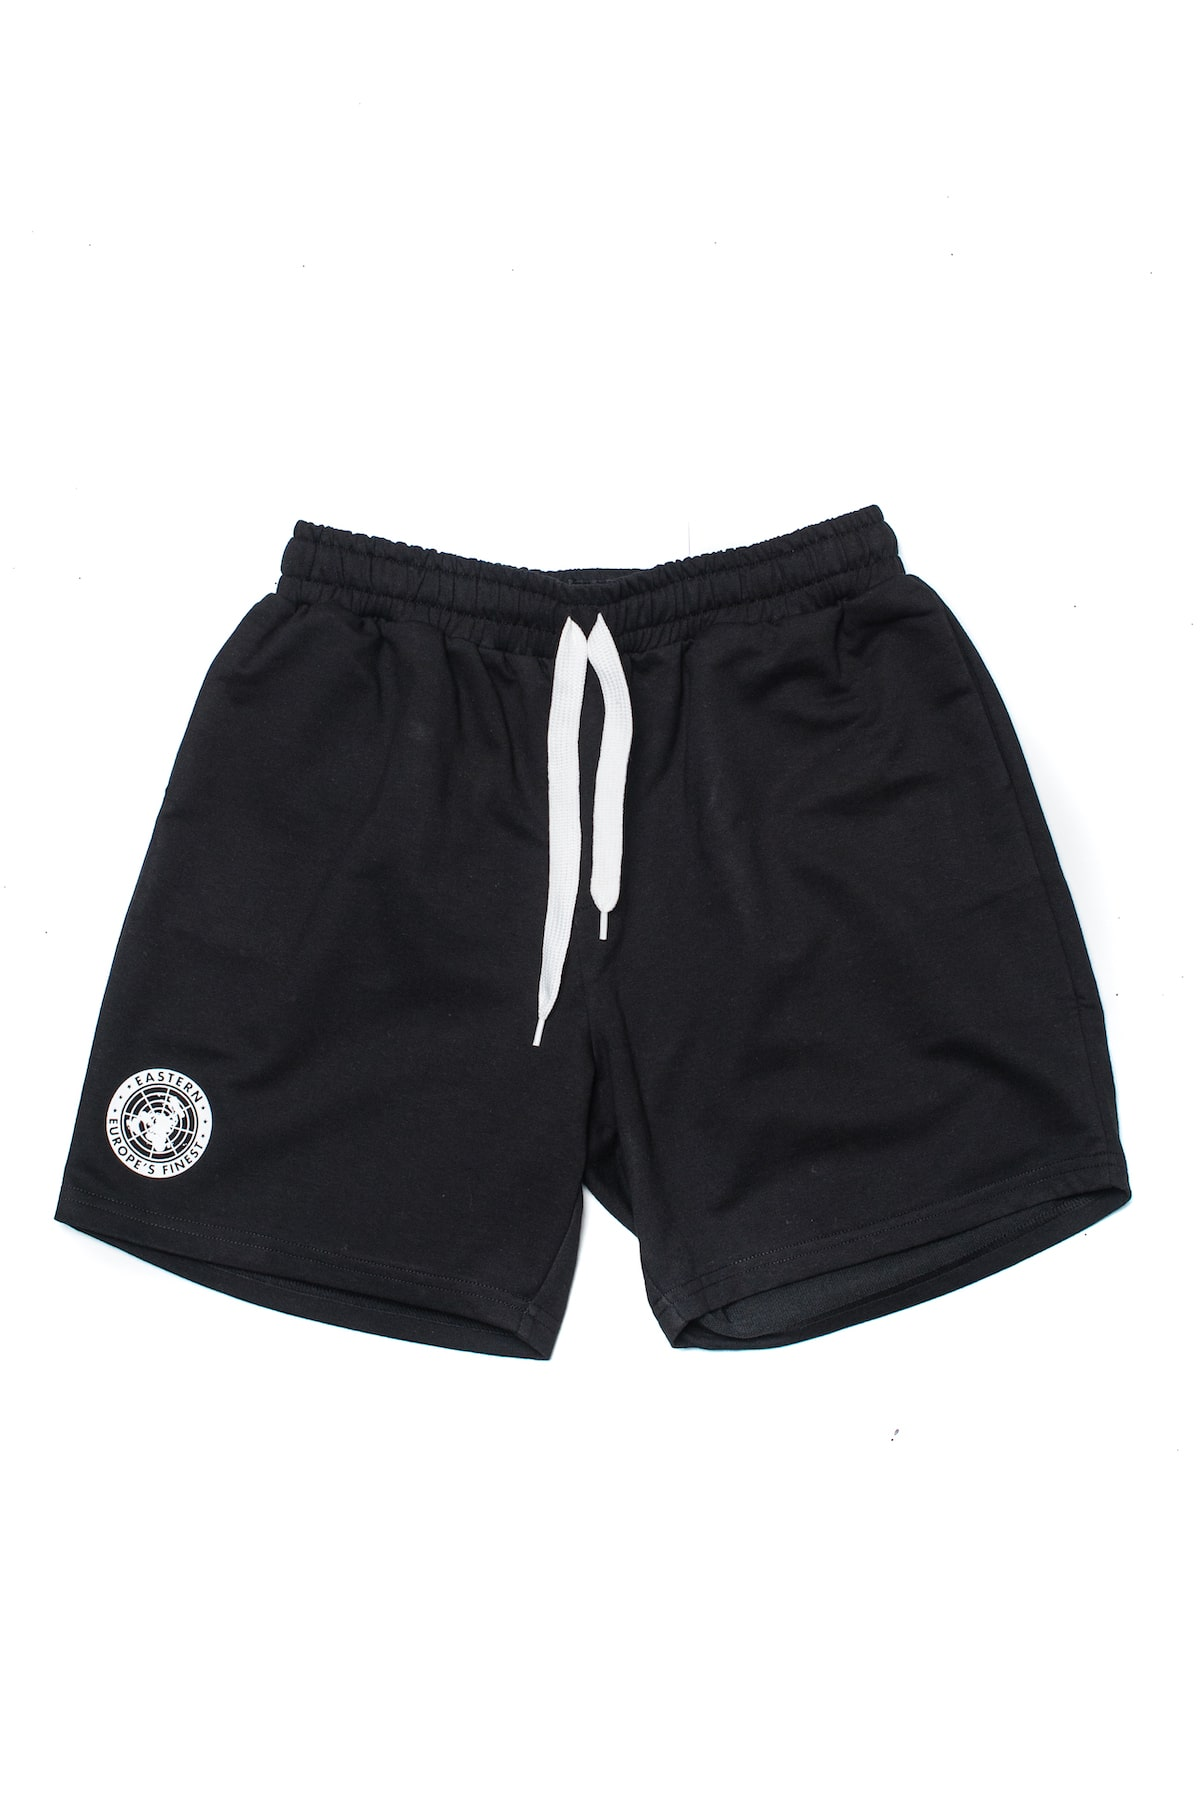 FLAT EARTH SHORTS